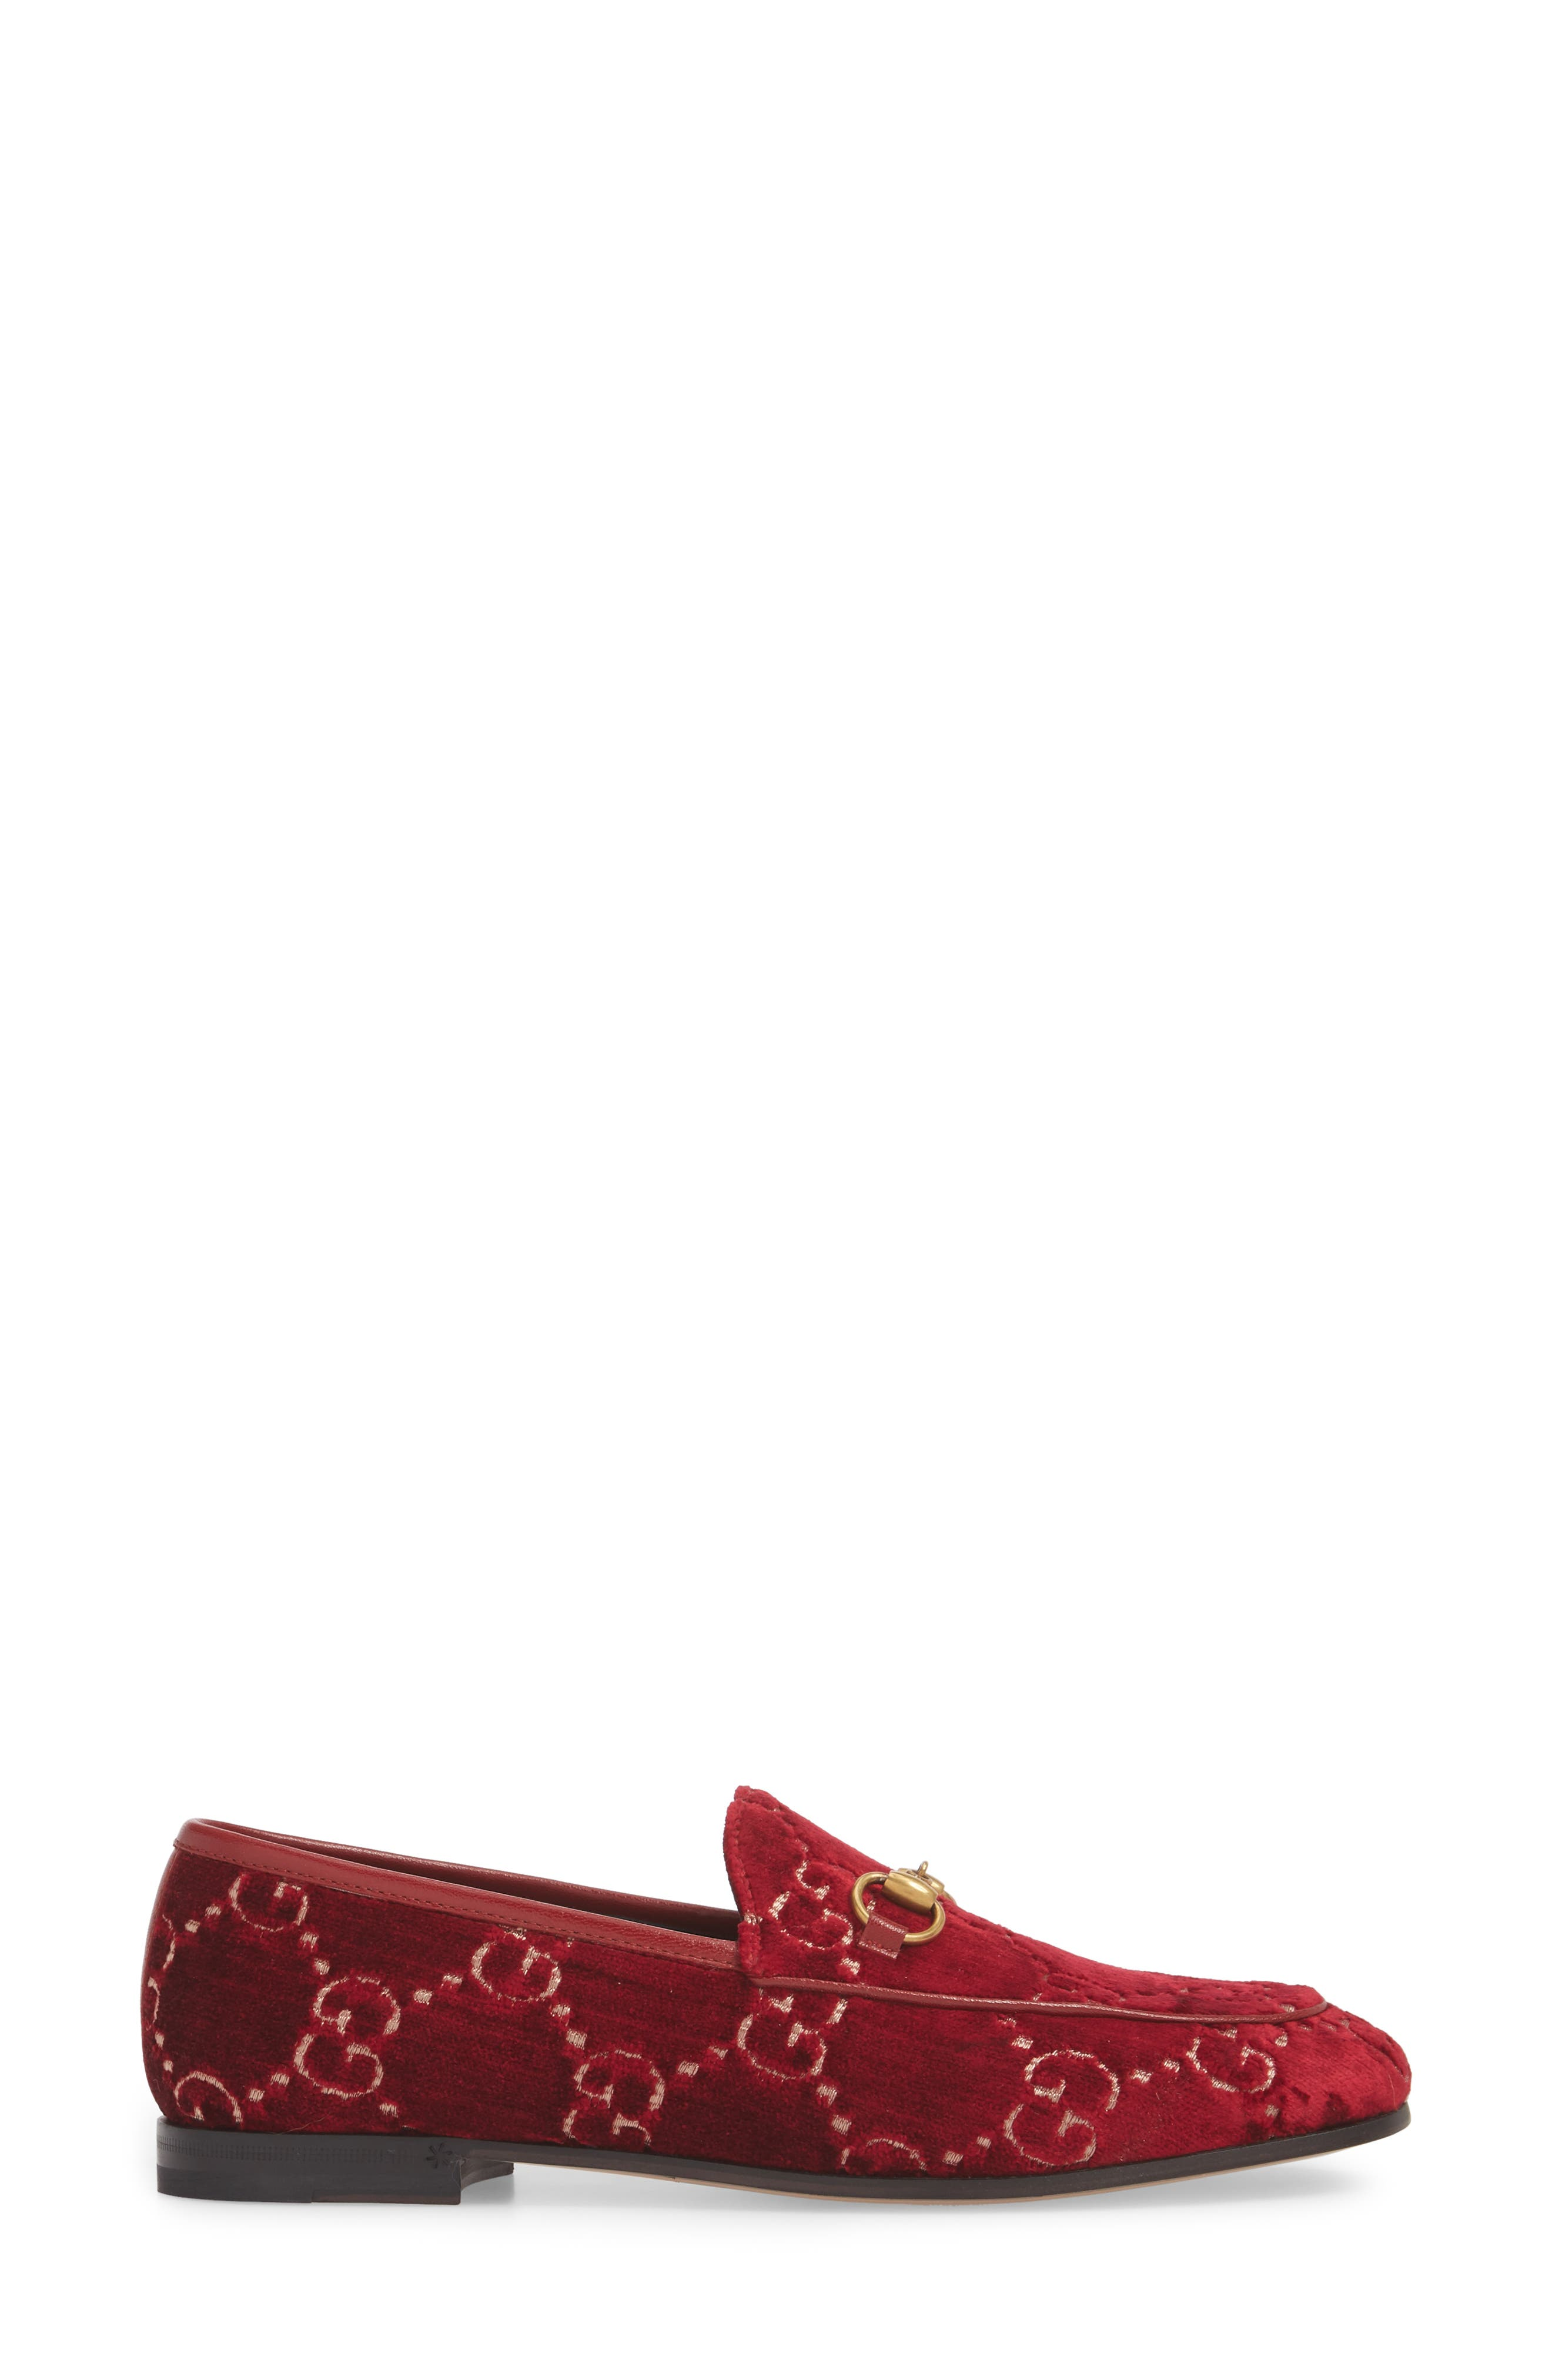 Jordaan Loafer,                             Alternate thumbnail 3, color,                             Red